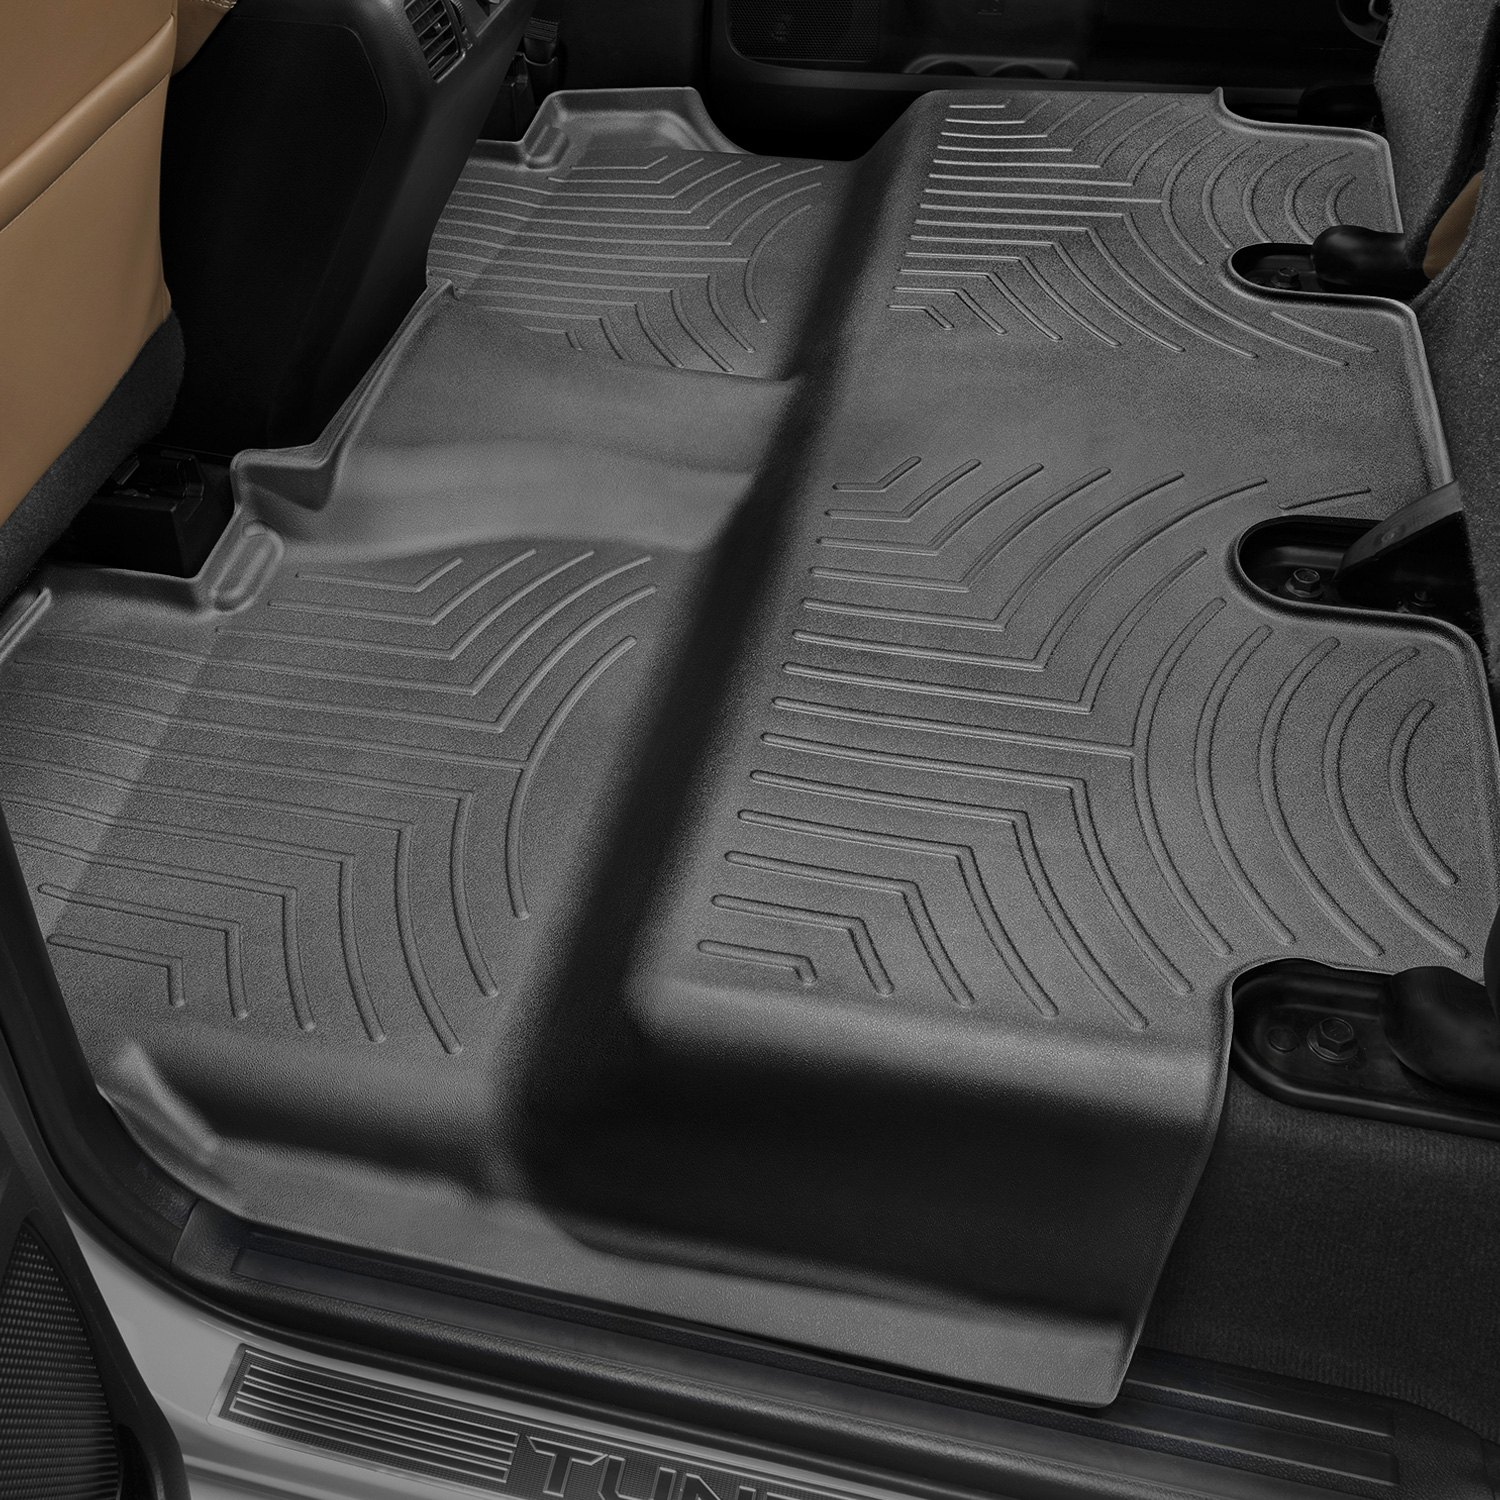 inspirational mats of floor for equinox chevrolet floorliner weathertech tundra